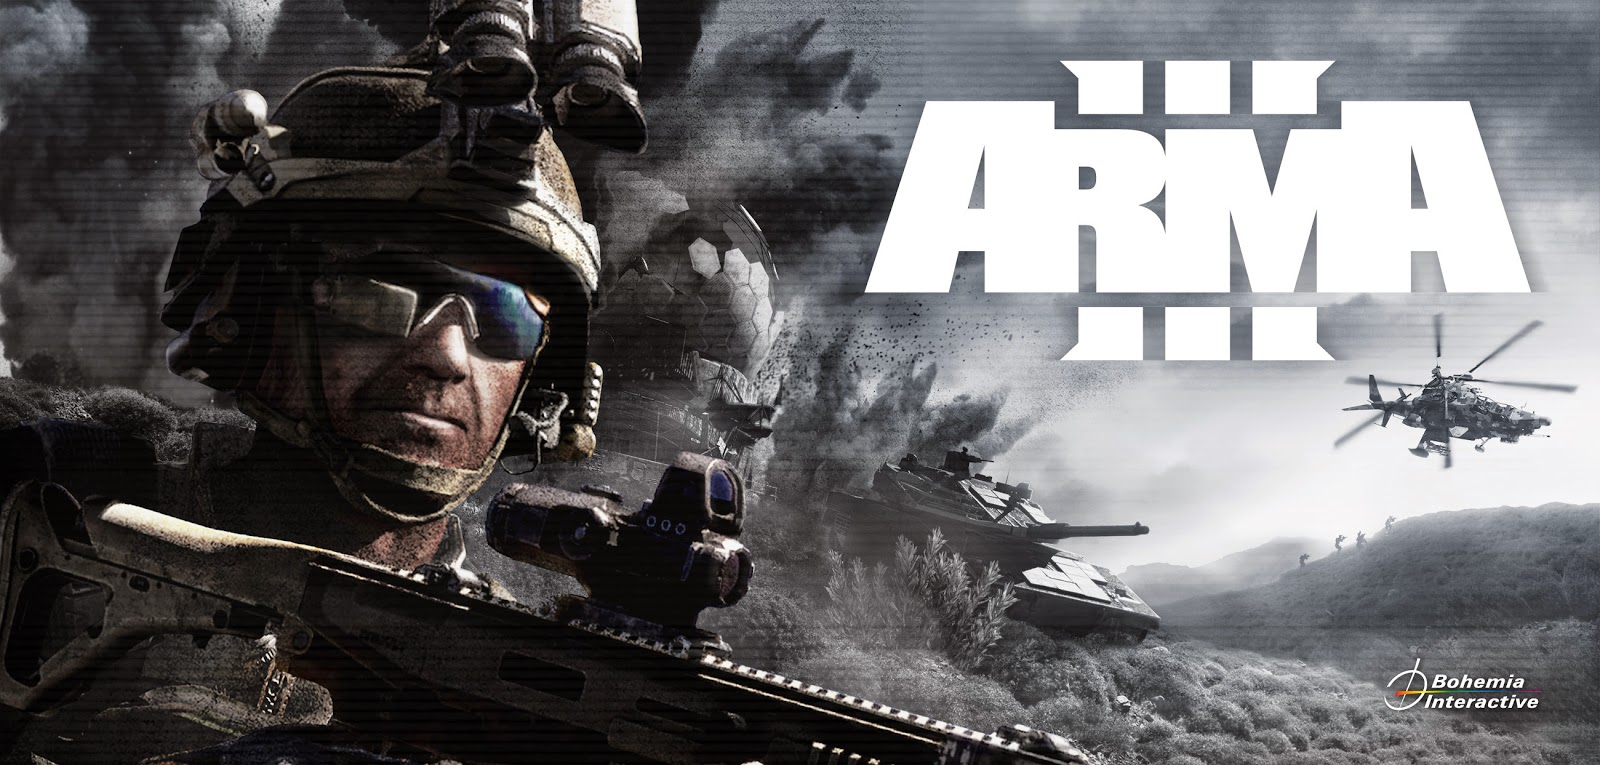 arma 3 reloaded crack download